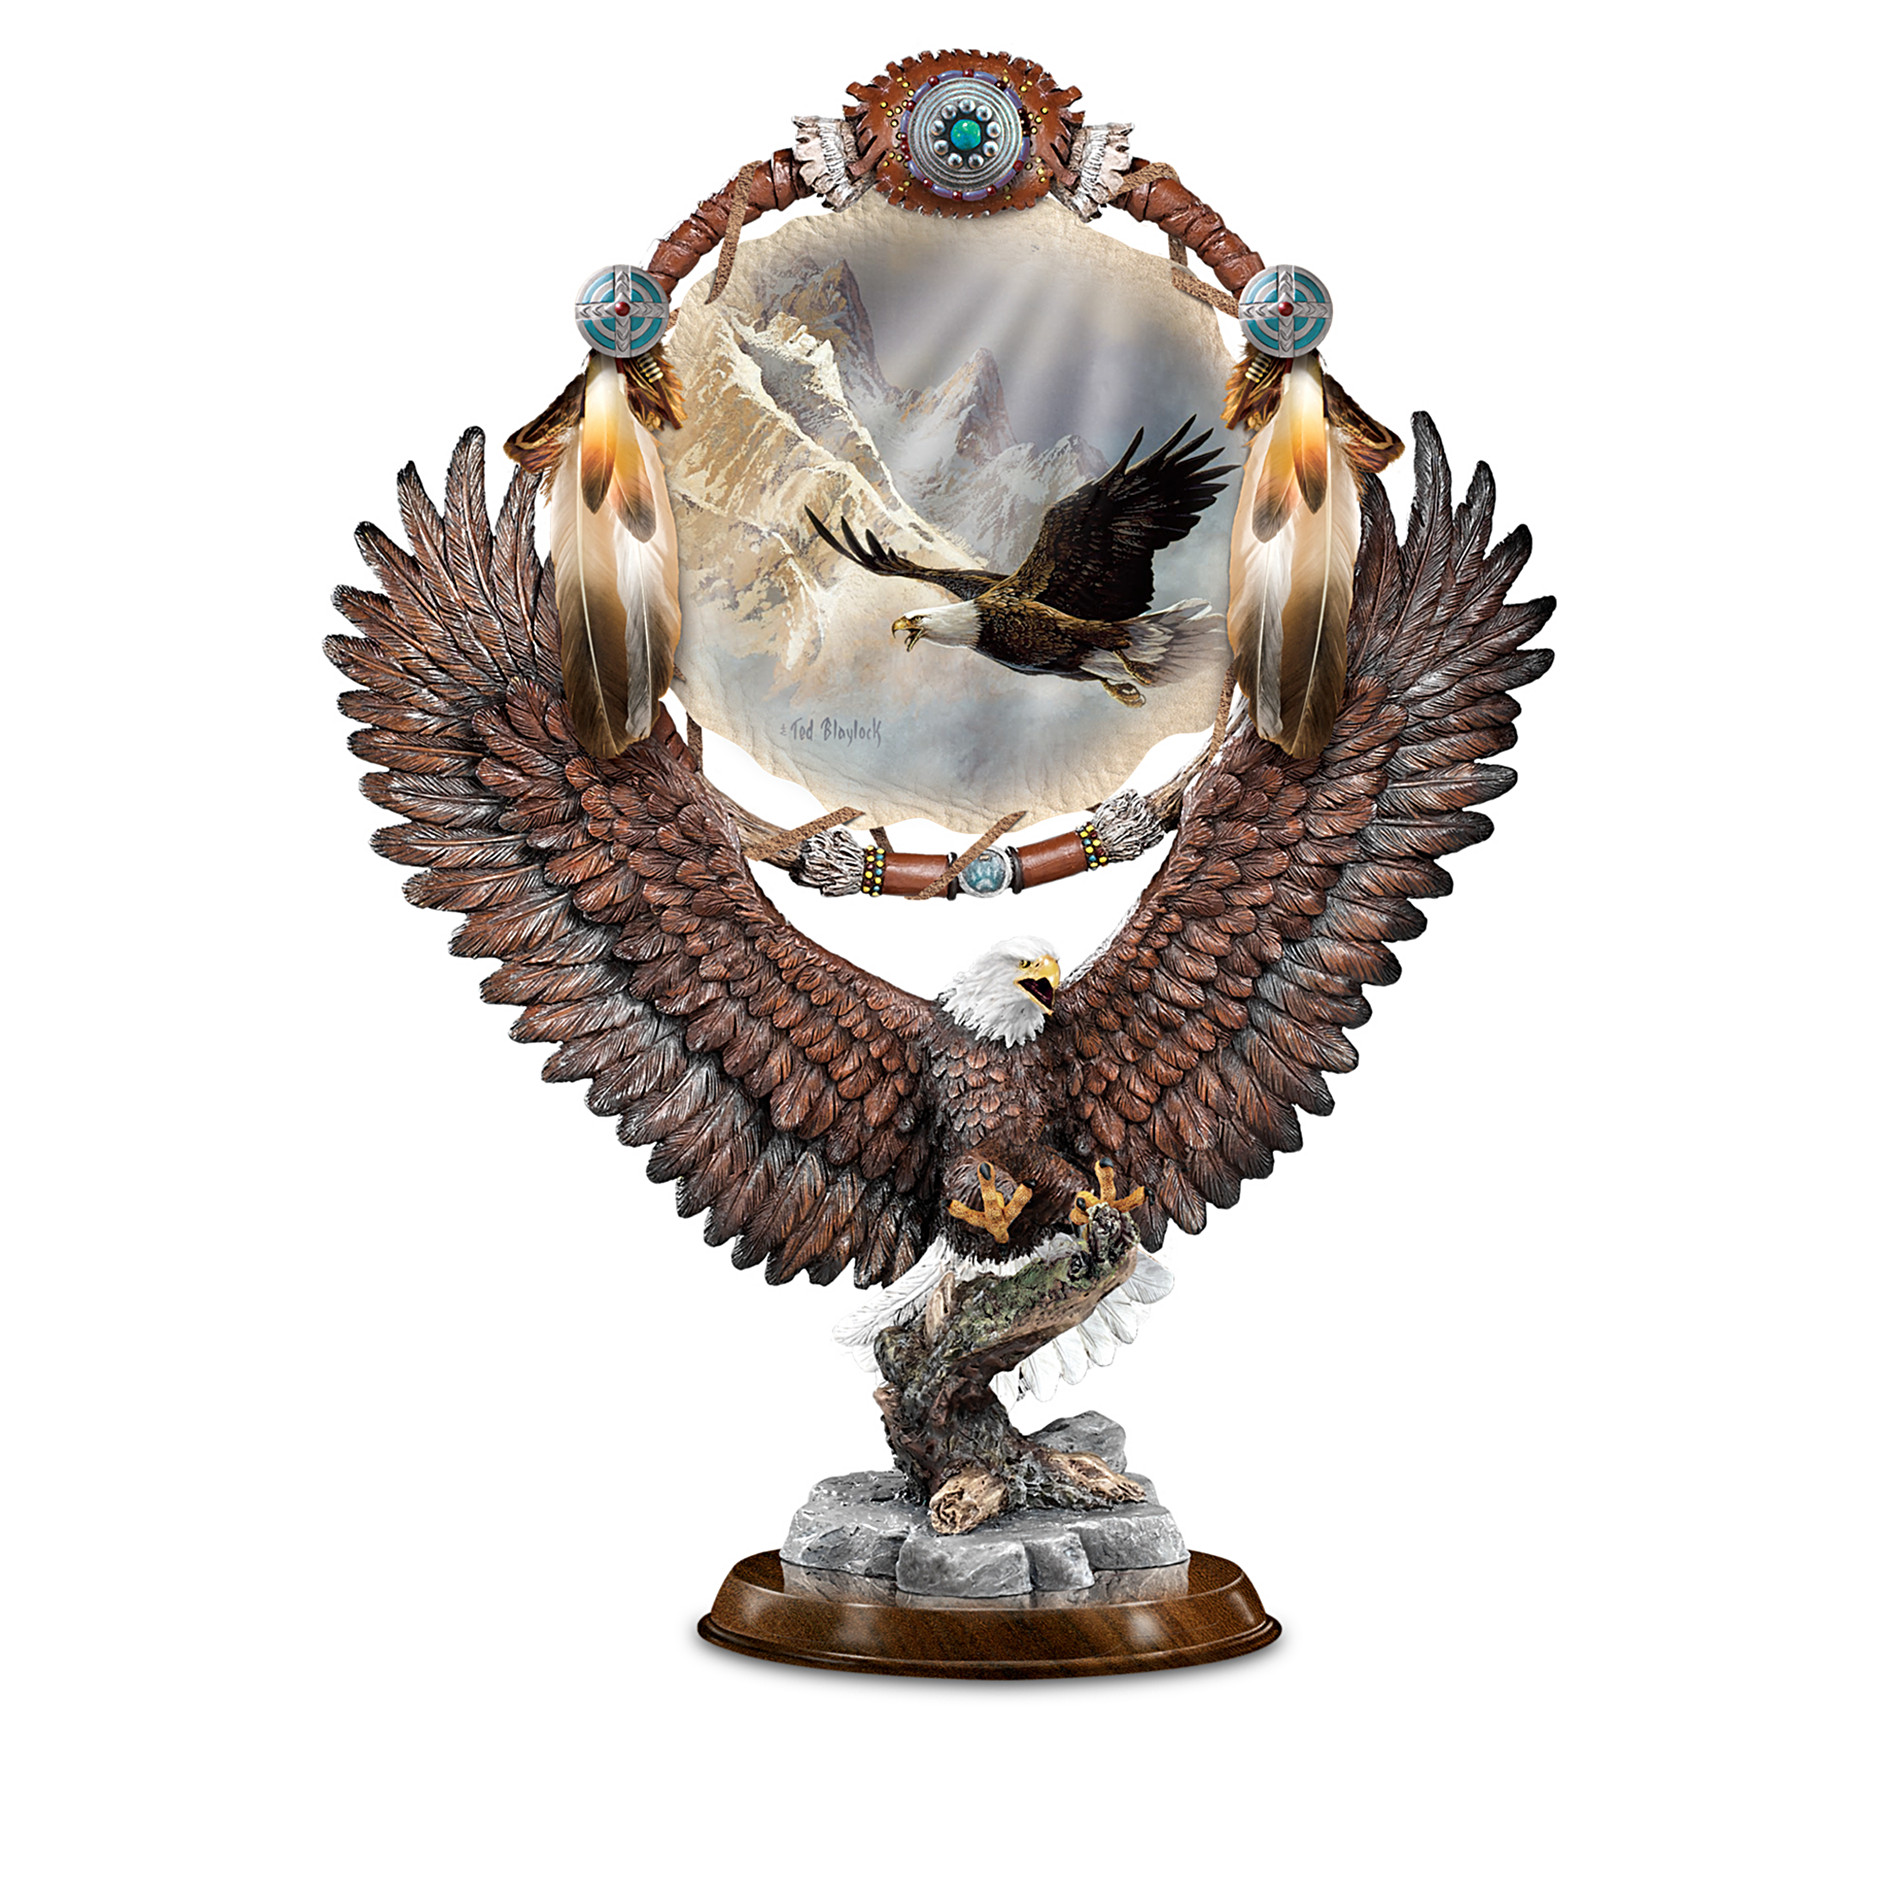 The Bradford Exchange On Wings Of Glory Ted Blaylock Collectible Eagle Art Sculpture Collection at Sears.com